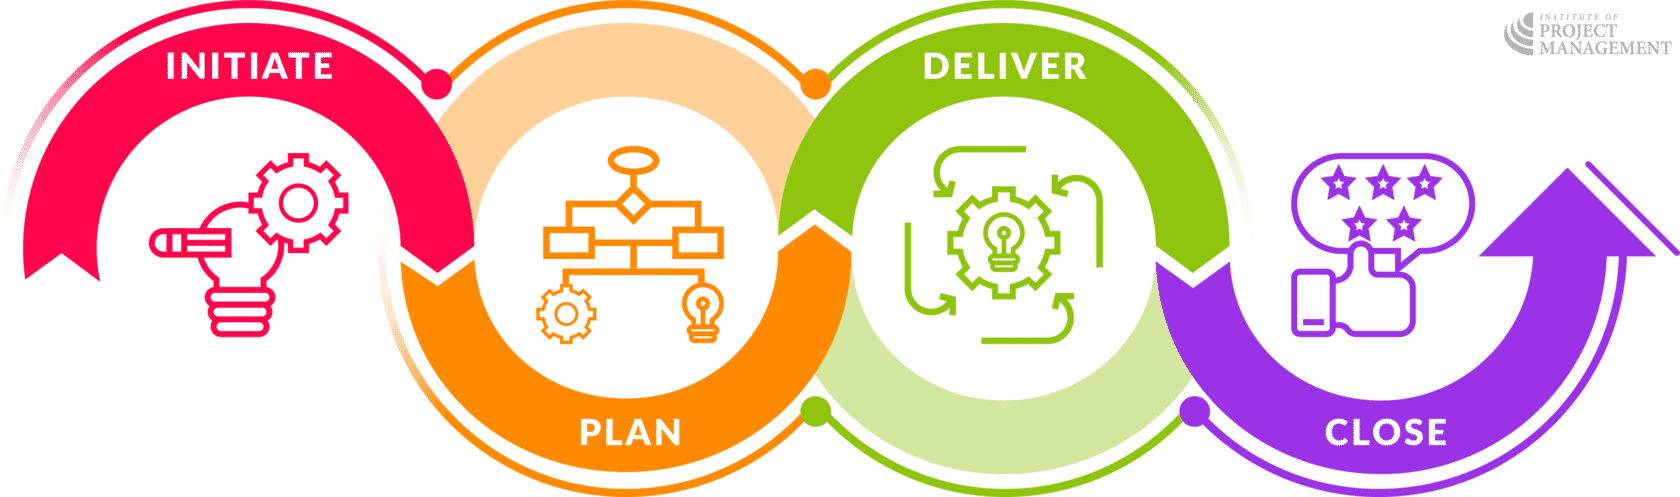 Infographic of initiate, plan, deliver and close